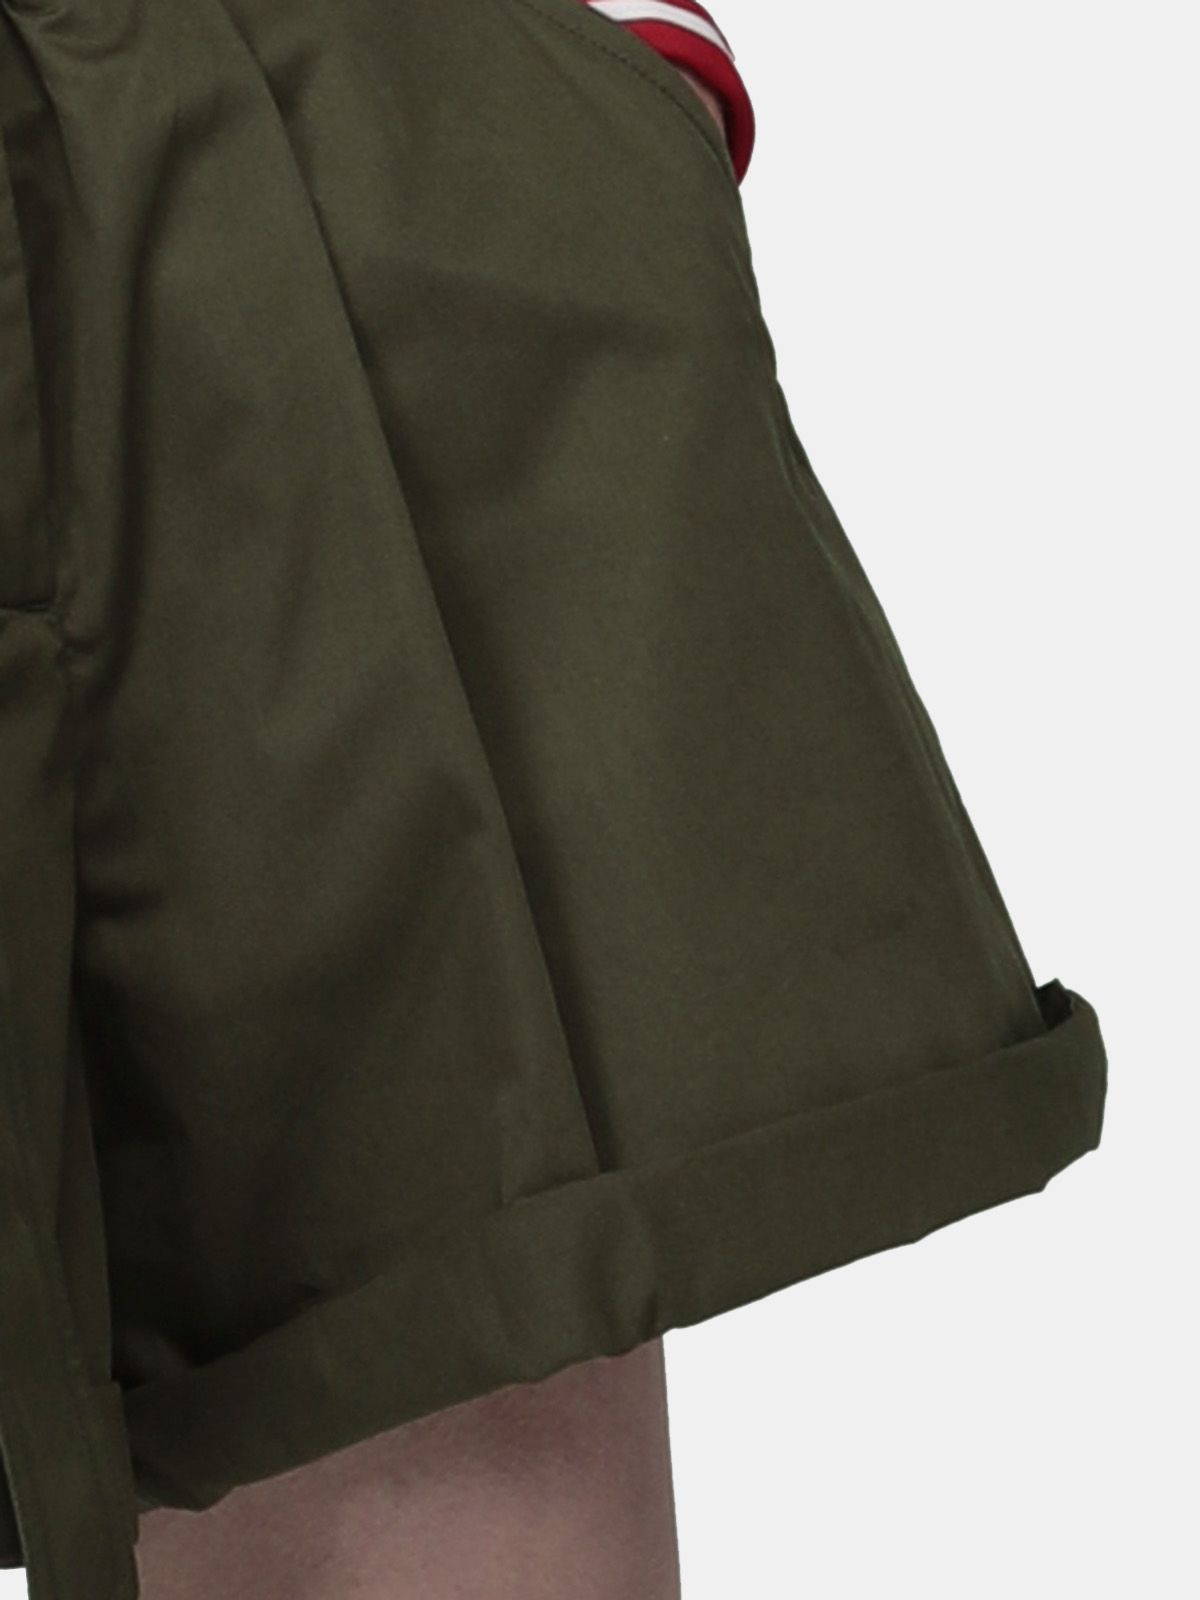 Golden Goose - Bella Bermuda shorts in olive-green with belt at the waist in